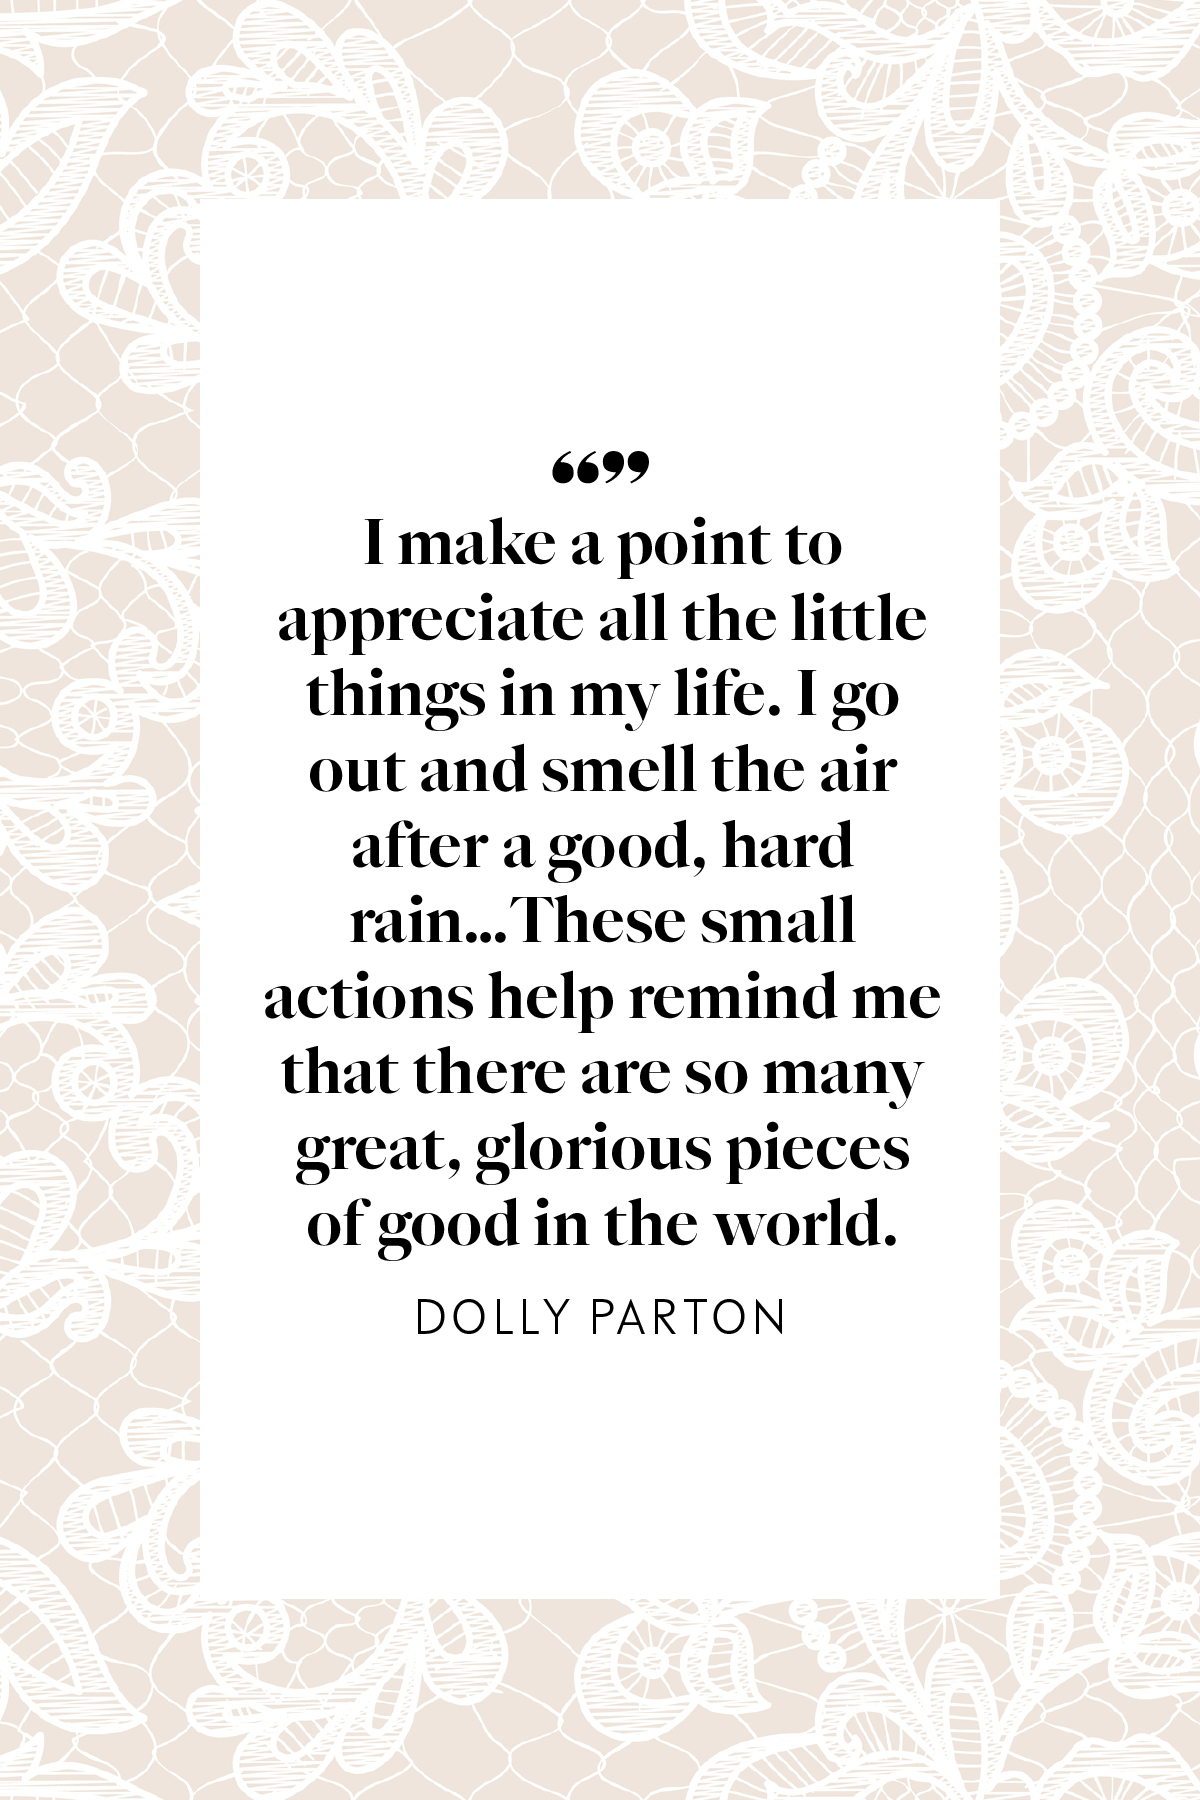 20 Best Dolly Parton Quotes on Love, Work, Life, and Marriage